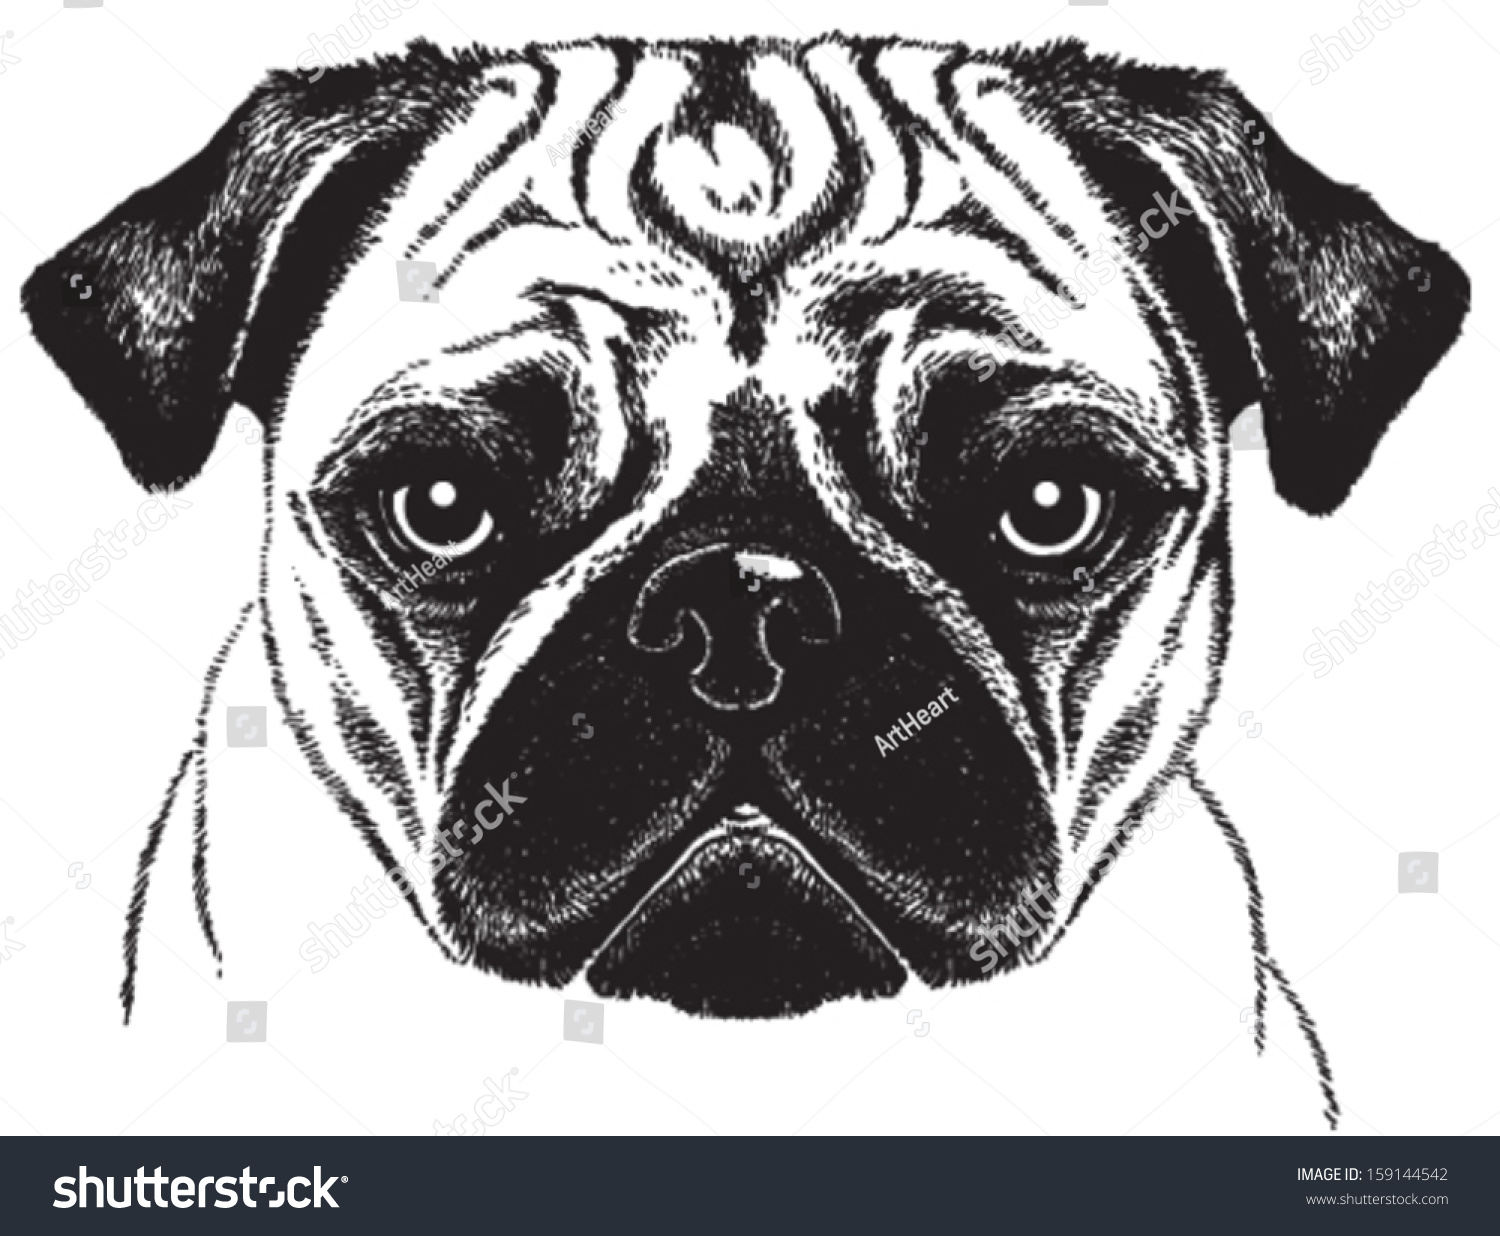 Notebook And Pen Sketch Stock Vector Art More Images Of: Black White Vector Sketch Fawn Pugs Stock Vector 159144542